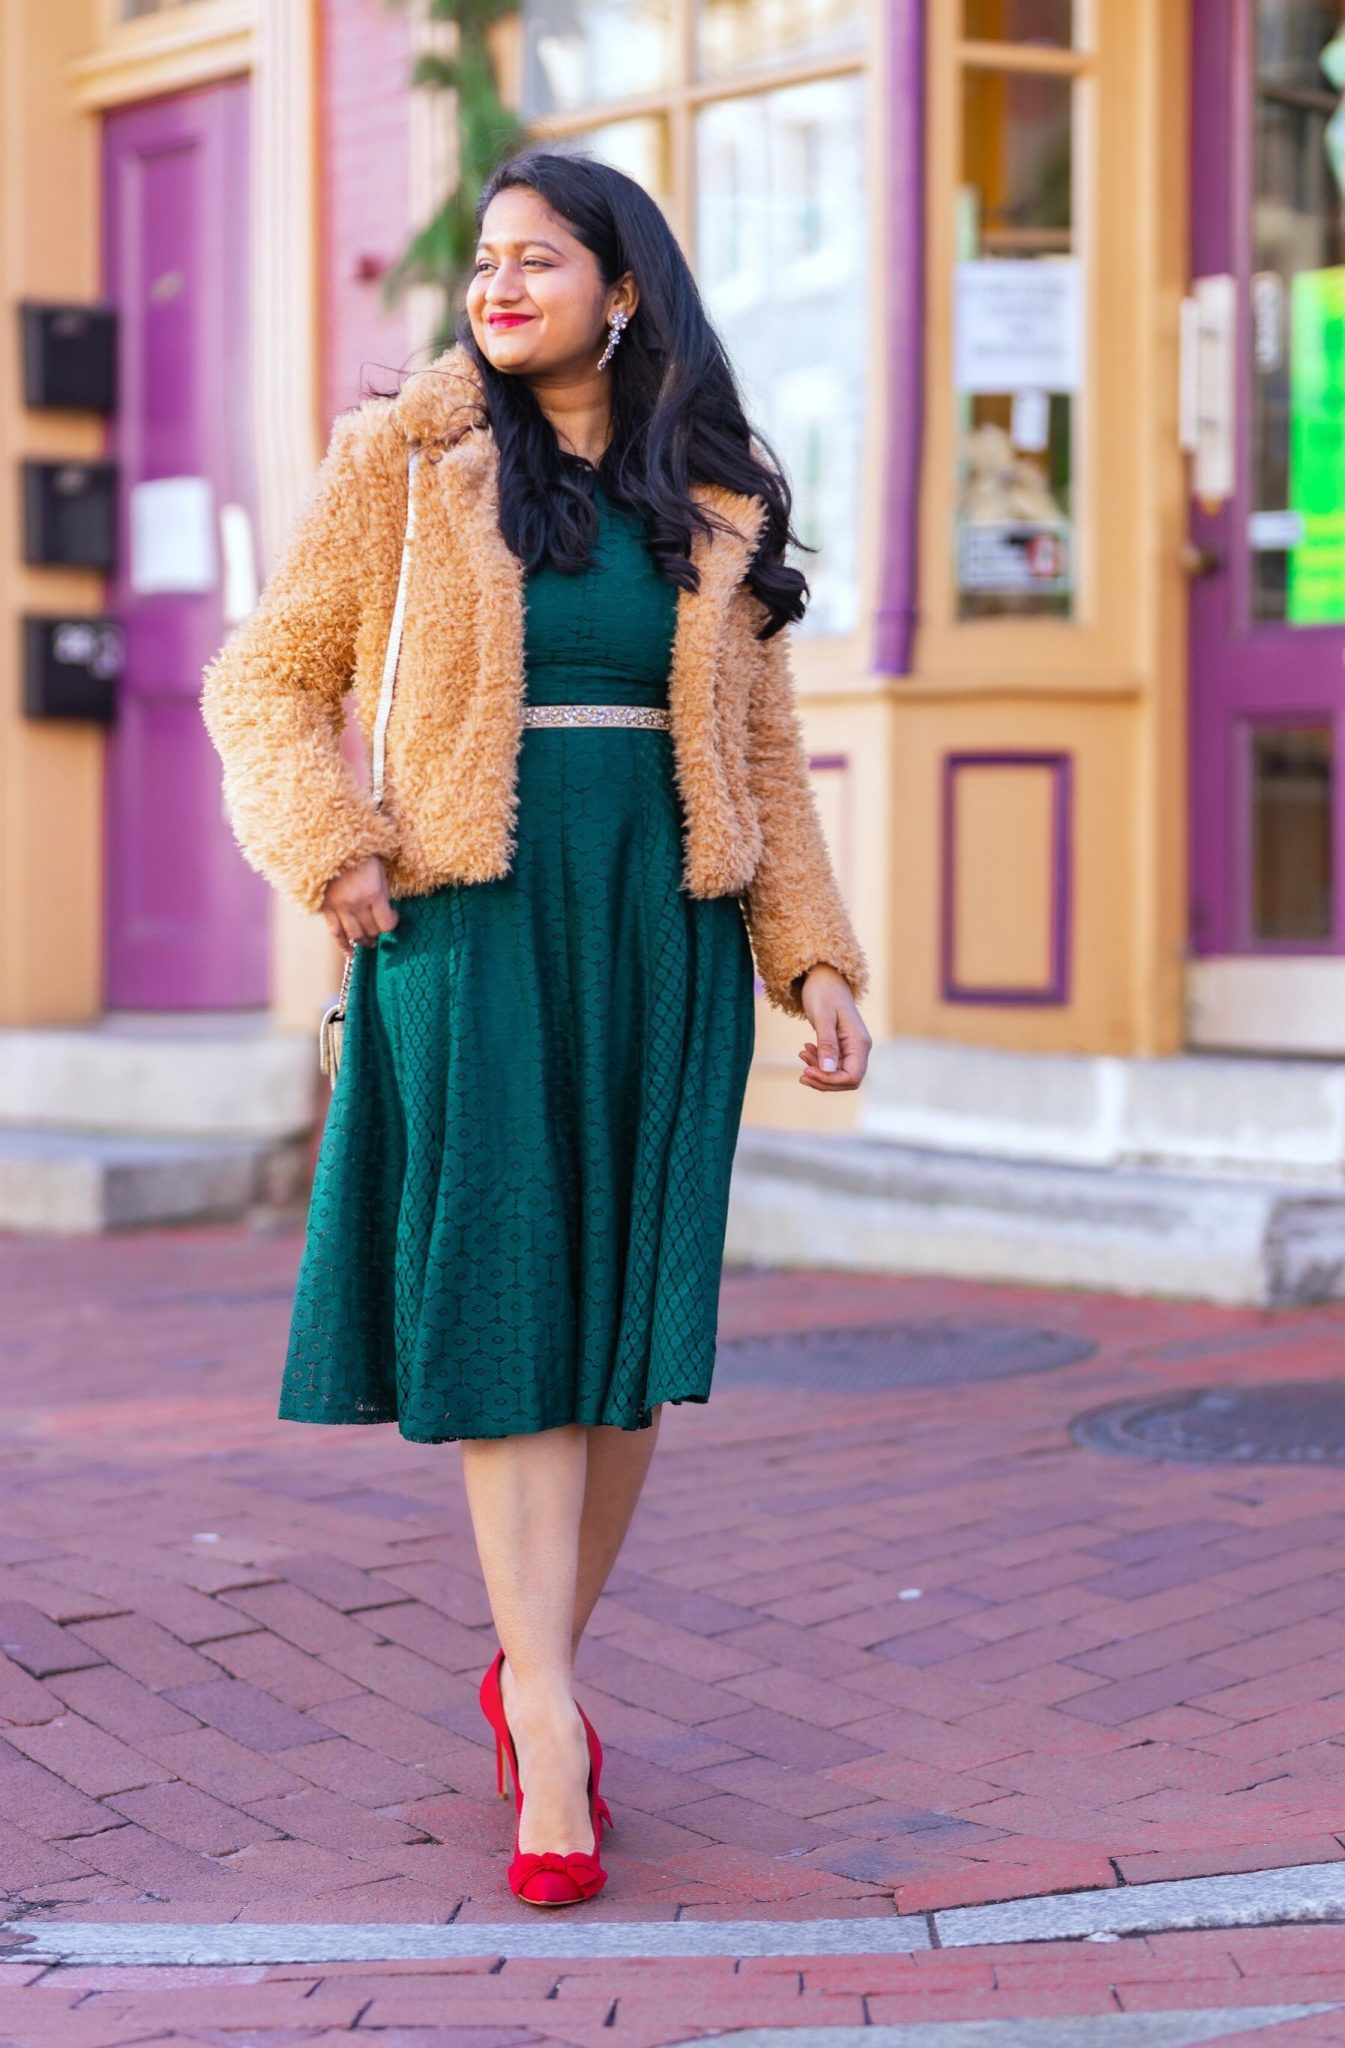 5 Cute Christmas Party Outfits by popular modest fashion blog, Dreaming Loud: image of a woman wearing Danny & Nicole green Lace Floral Fit & Flare Dress_ blanknyc faux fur teddy coat_Rhinestone Belt.